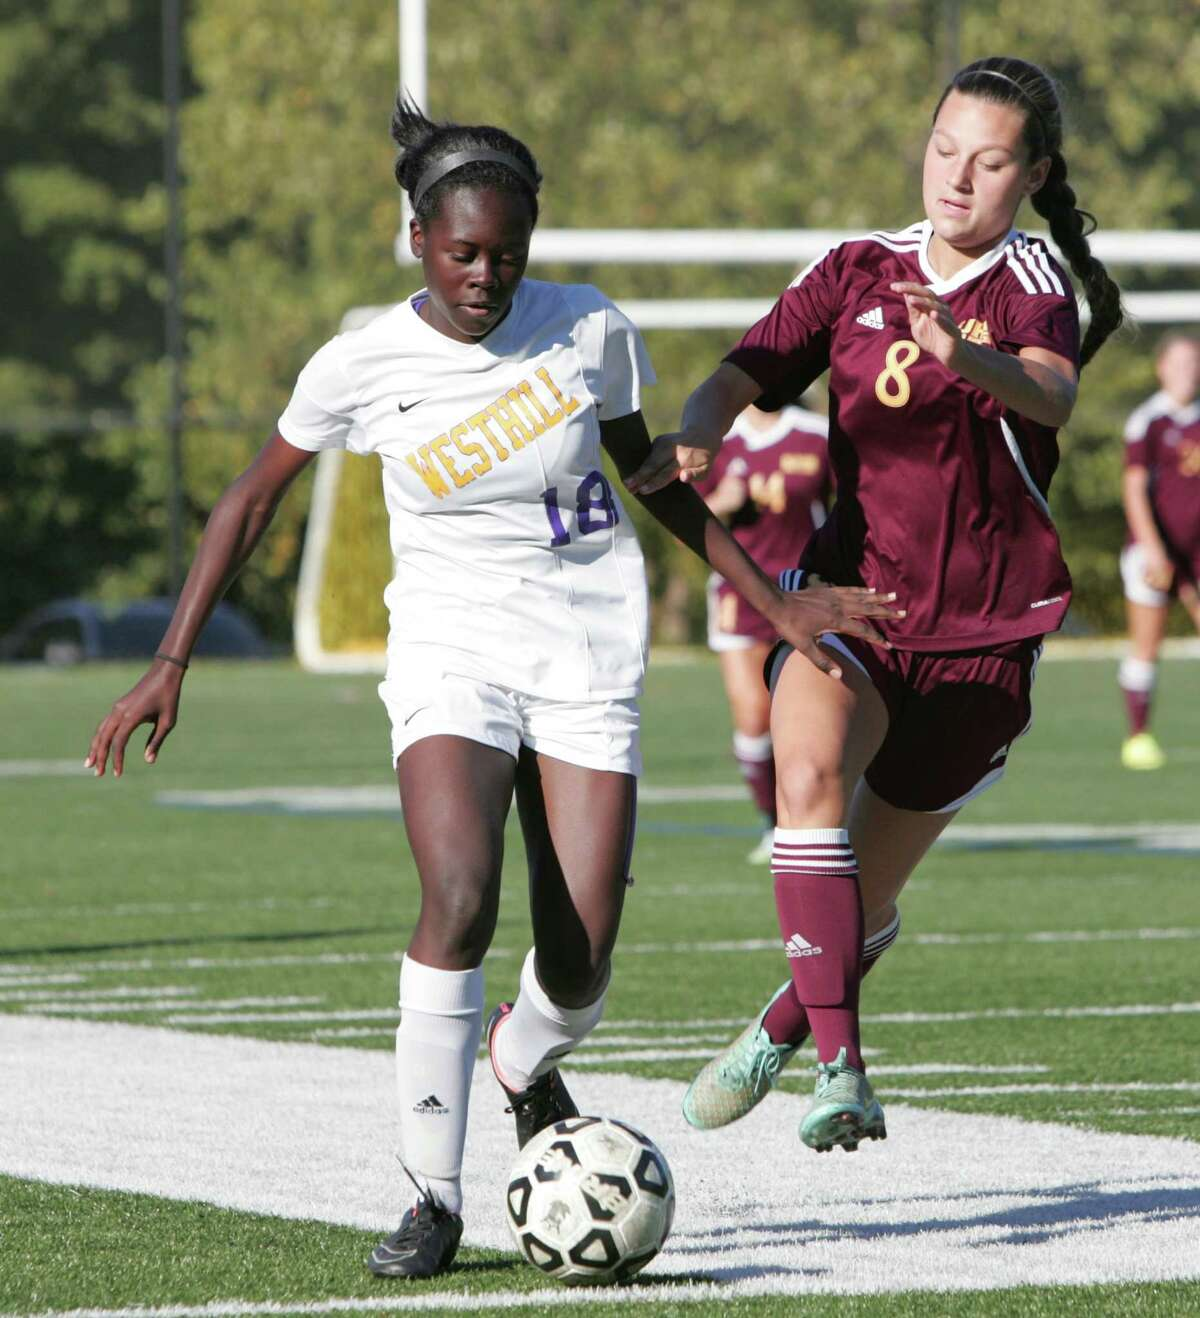 St. Joseph defeated Westhill 4-3 in a girls varsity soccer game played in Stamford, Conn. on Oct. 7, 2015.